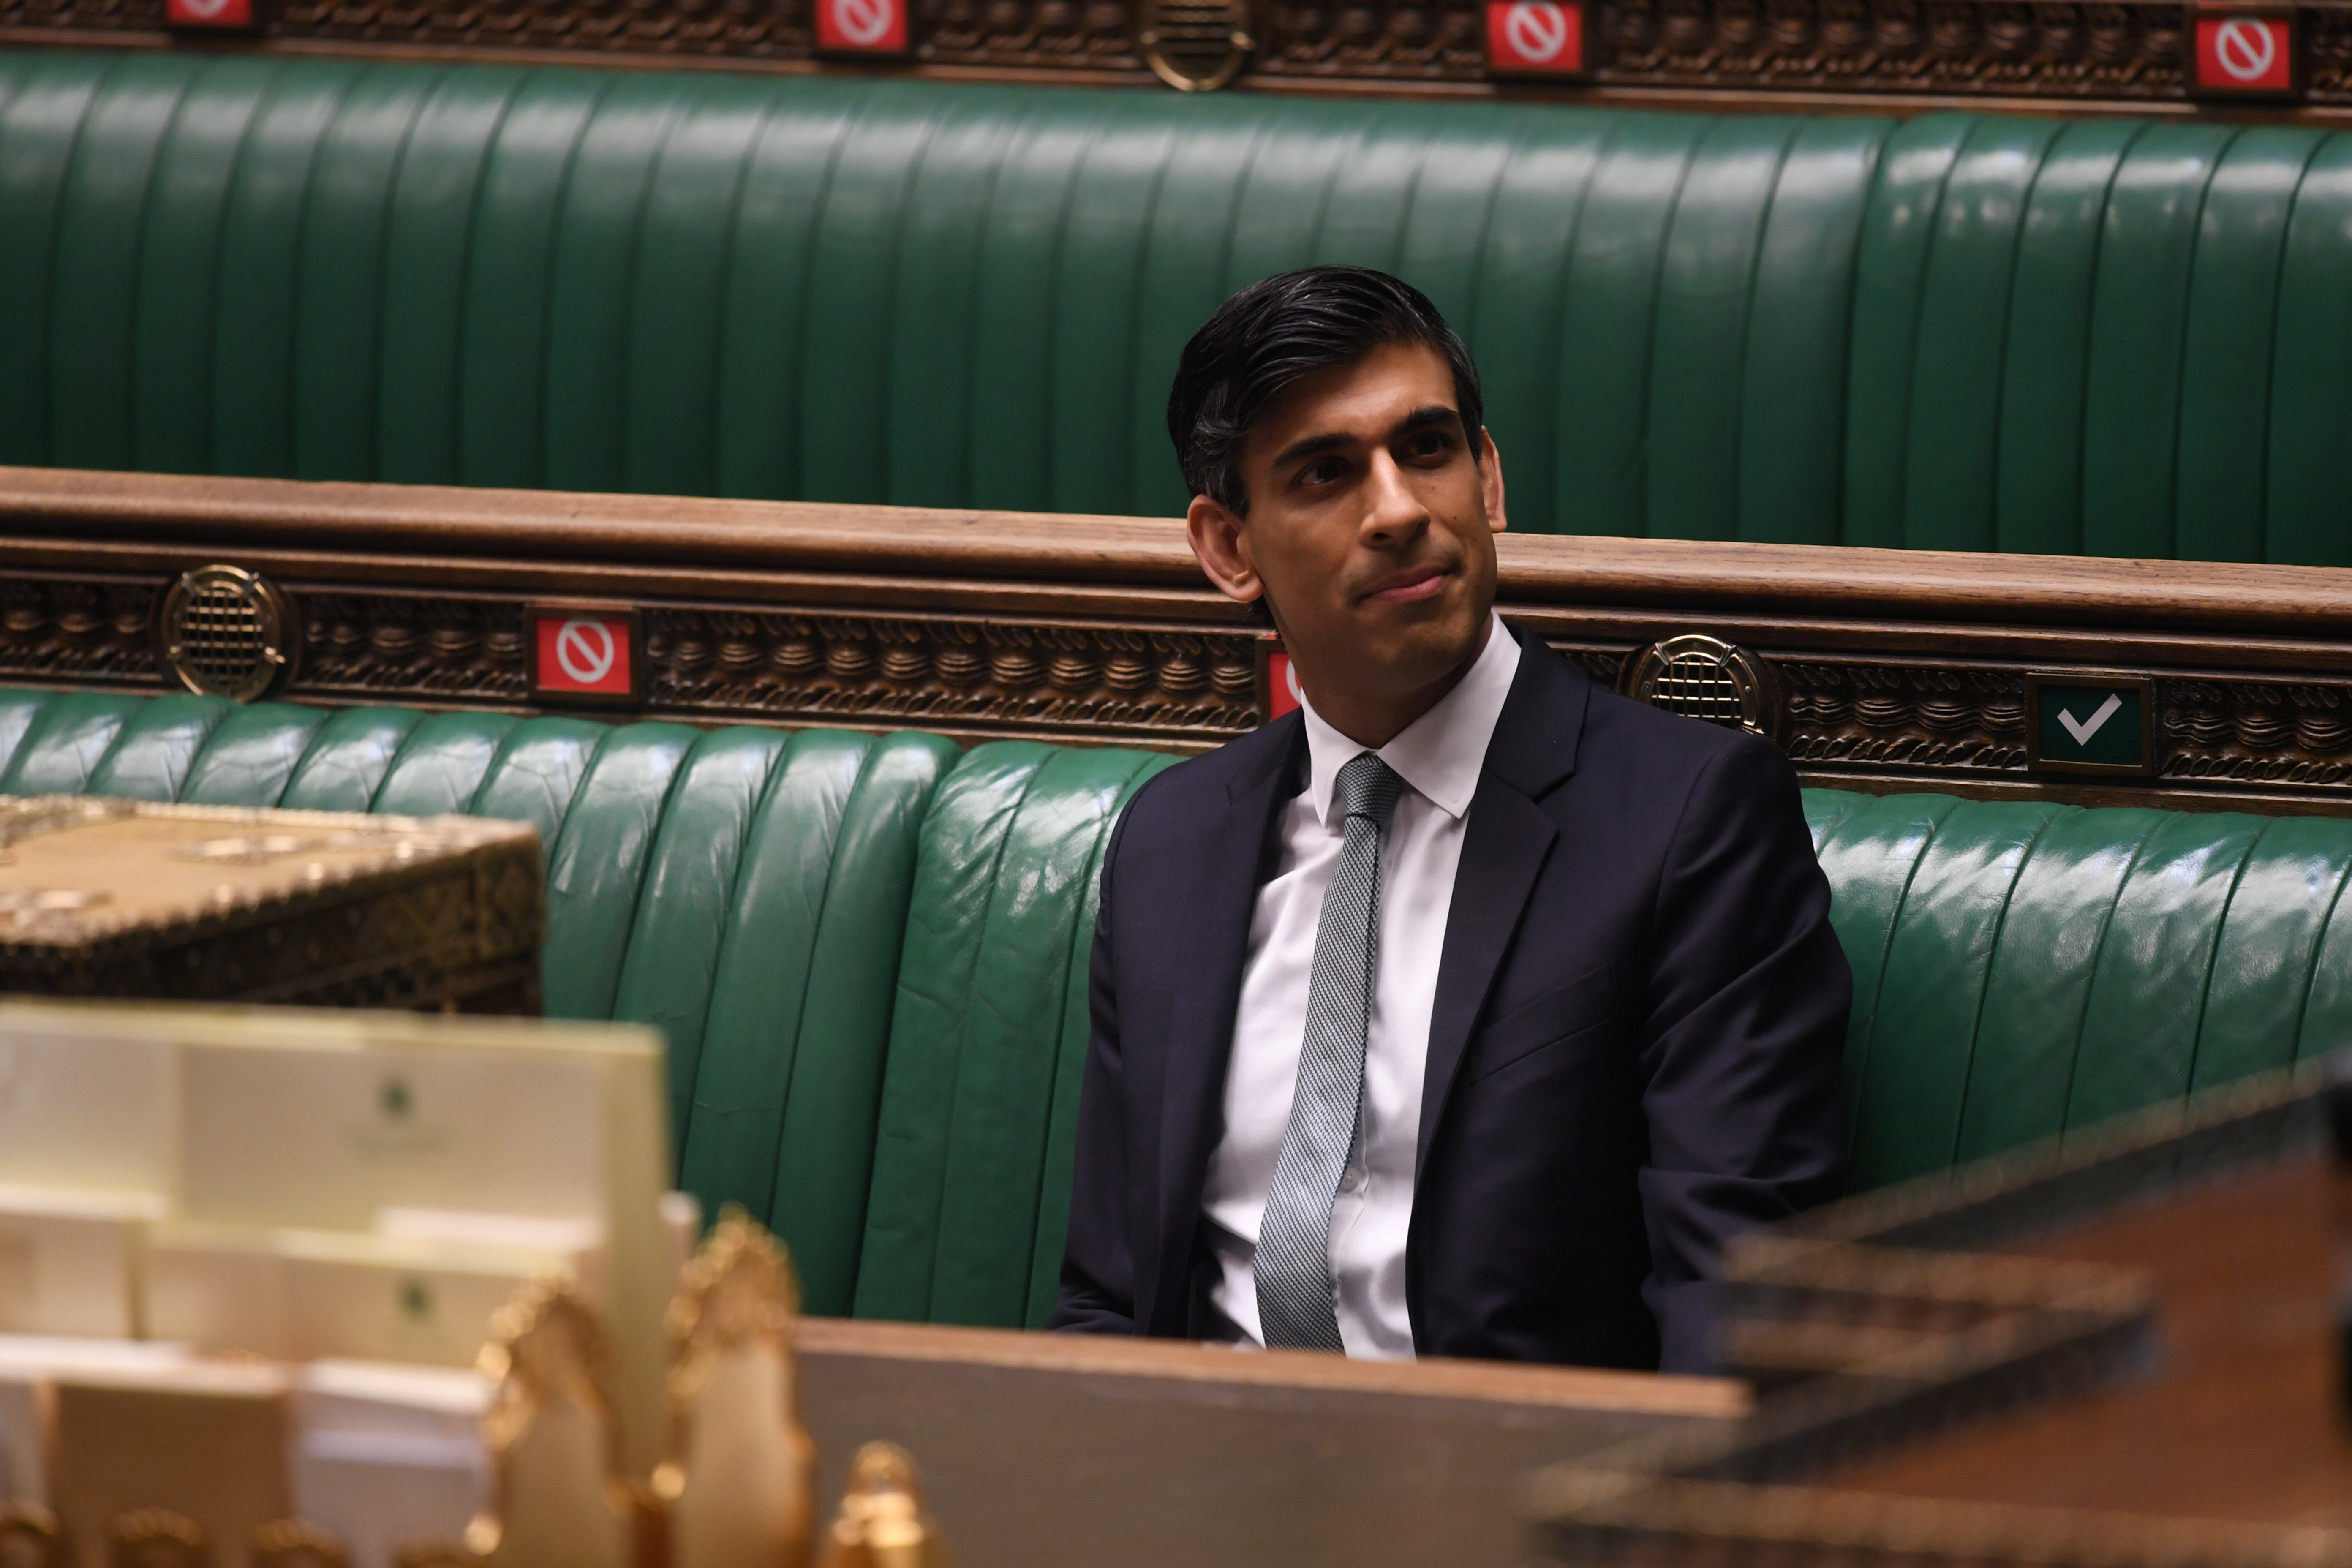 British Chancellor of the Exchequer Rishi Sunak attends a session at the House of Commons in London, Britain March 3, 2021. UK Parliament/Jessica Taylor/Handout via REUTERS